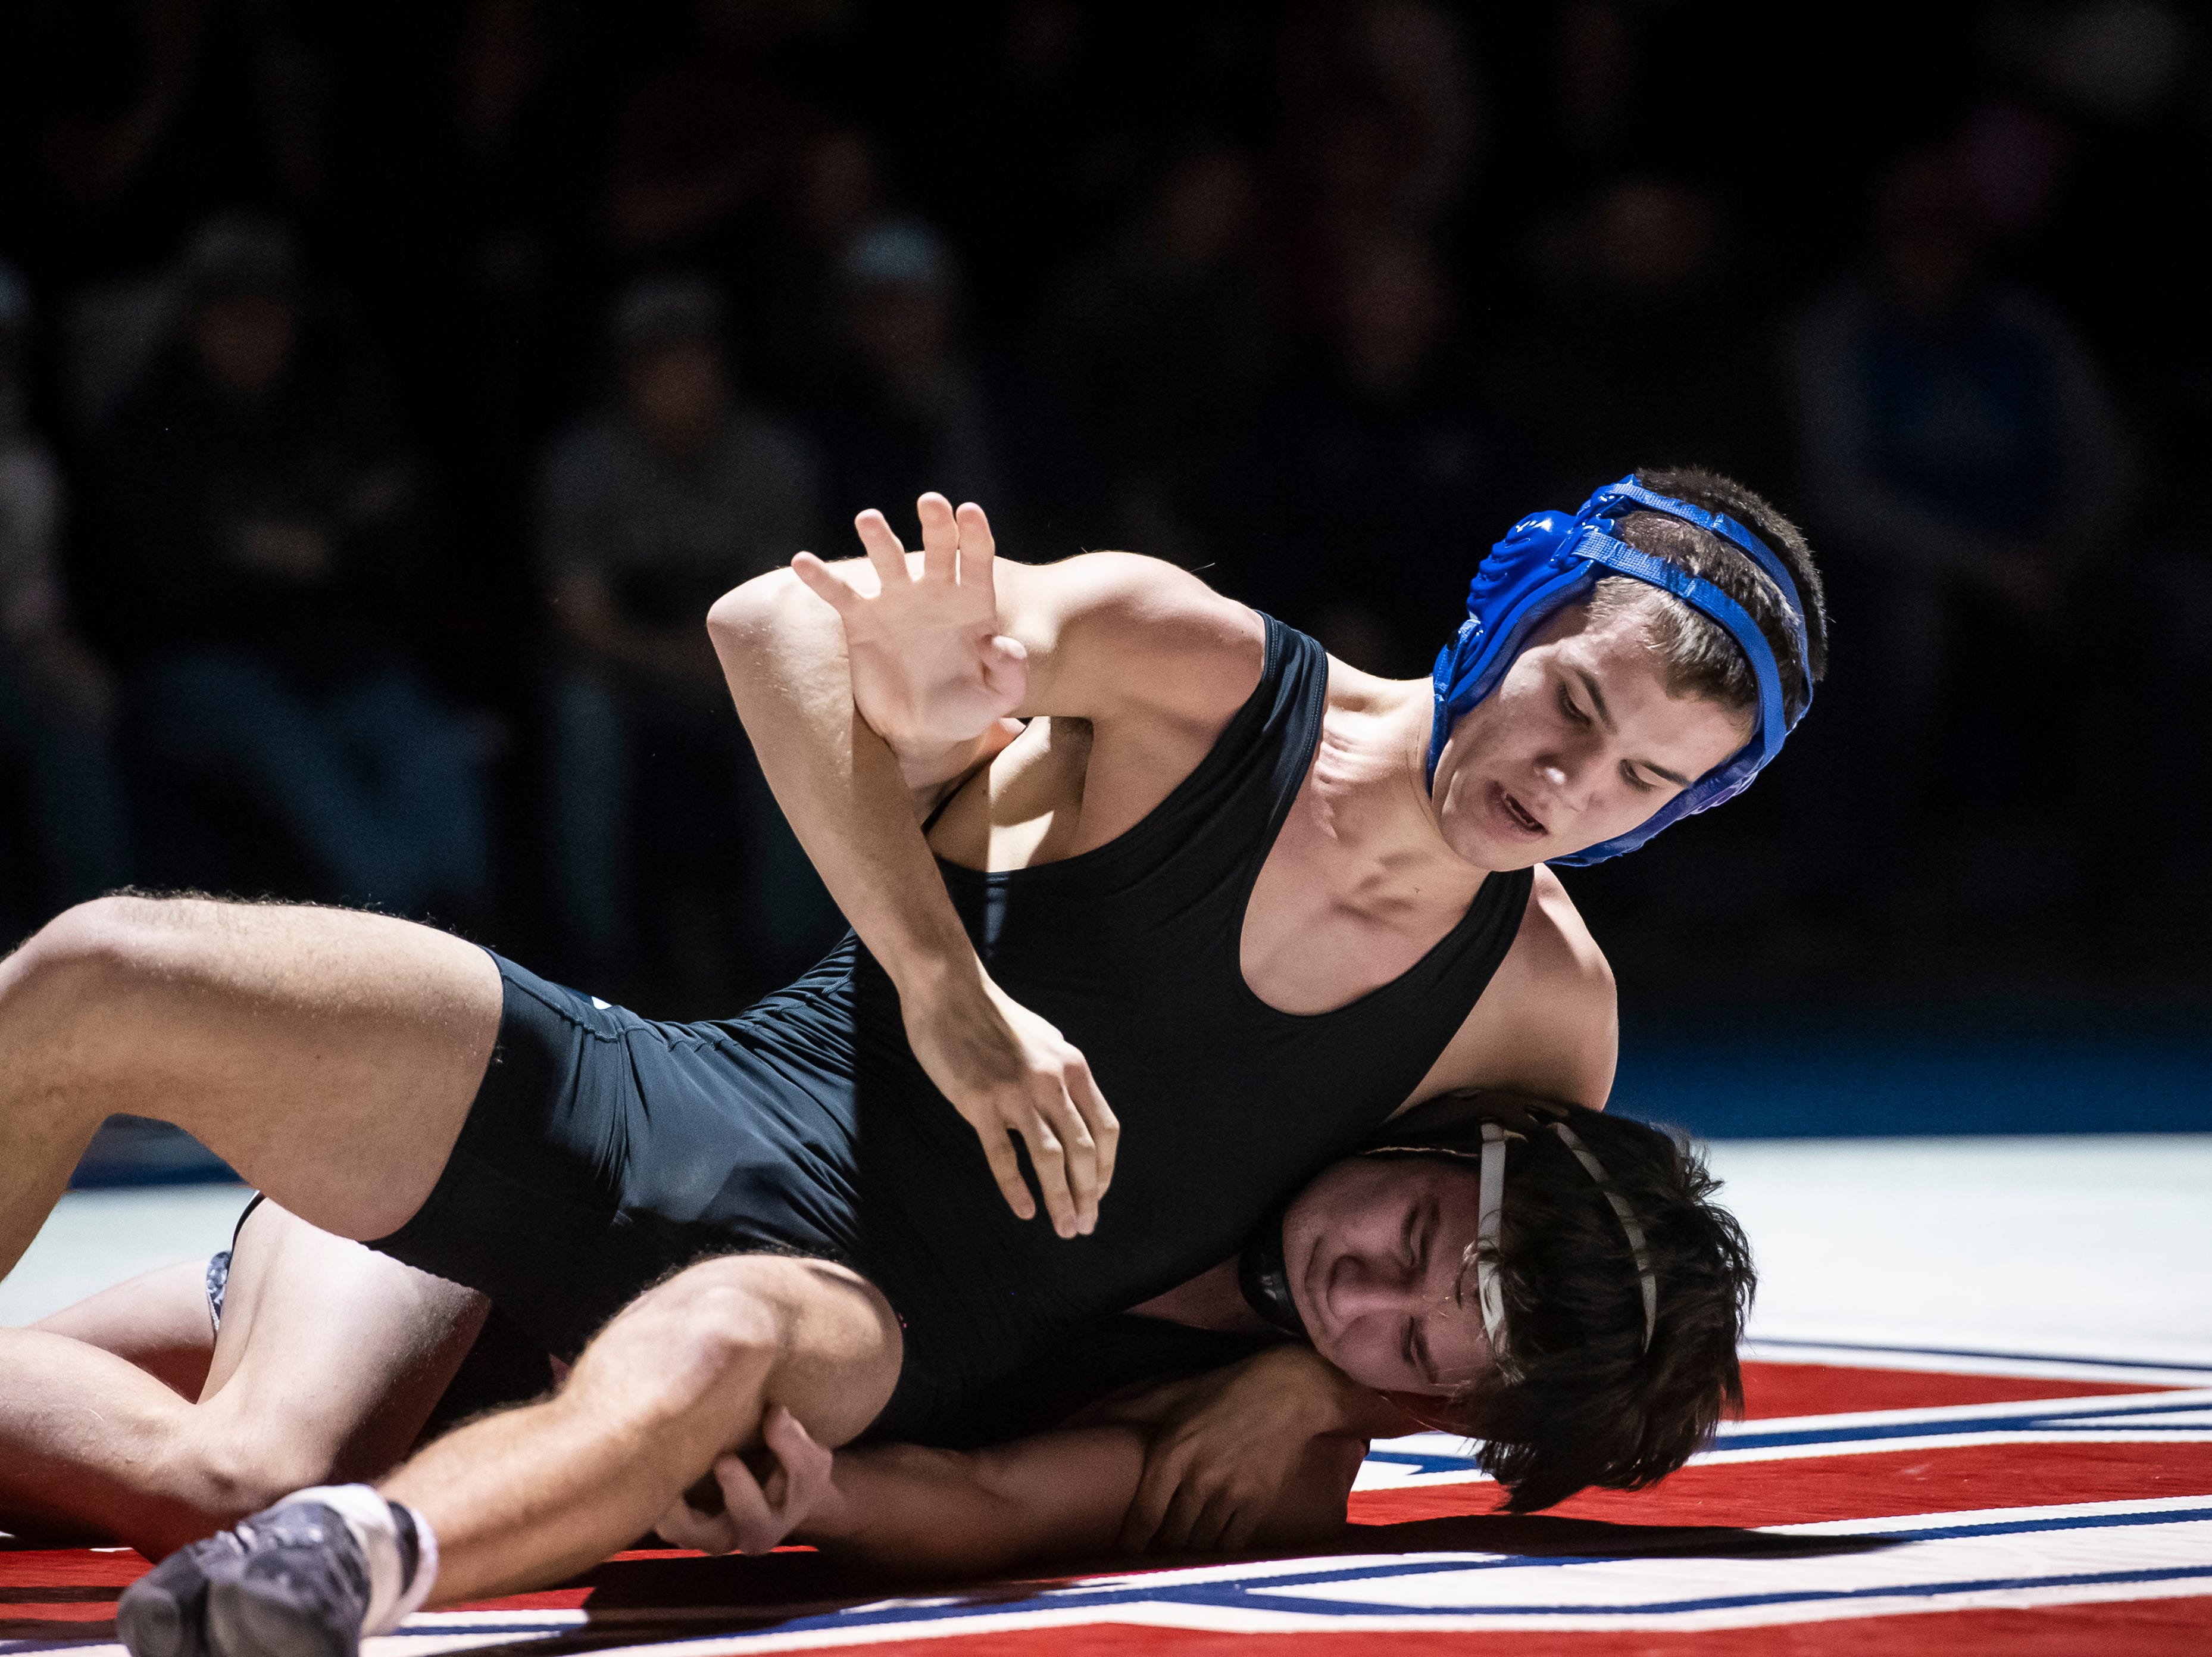 Spring Grove's Brady Pitzer, bottoms, wrestles South Western's Cameron Stevens during the 145-pound bout. Stevens won the match, 9-4, Tuesday, Jan. 15, 2019. Spring Grove beat the Mustangs 36-25 during the Rockets' annual 'Take Down Cancer' match, which raised $44,250 for the Heather L. Baker Foundation.